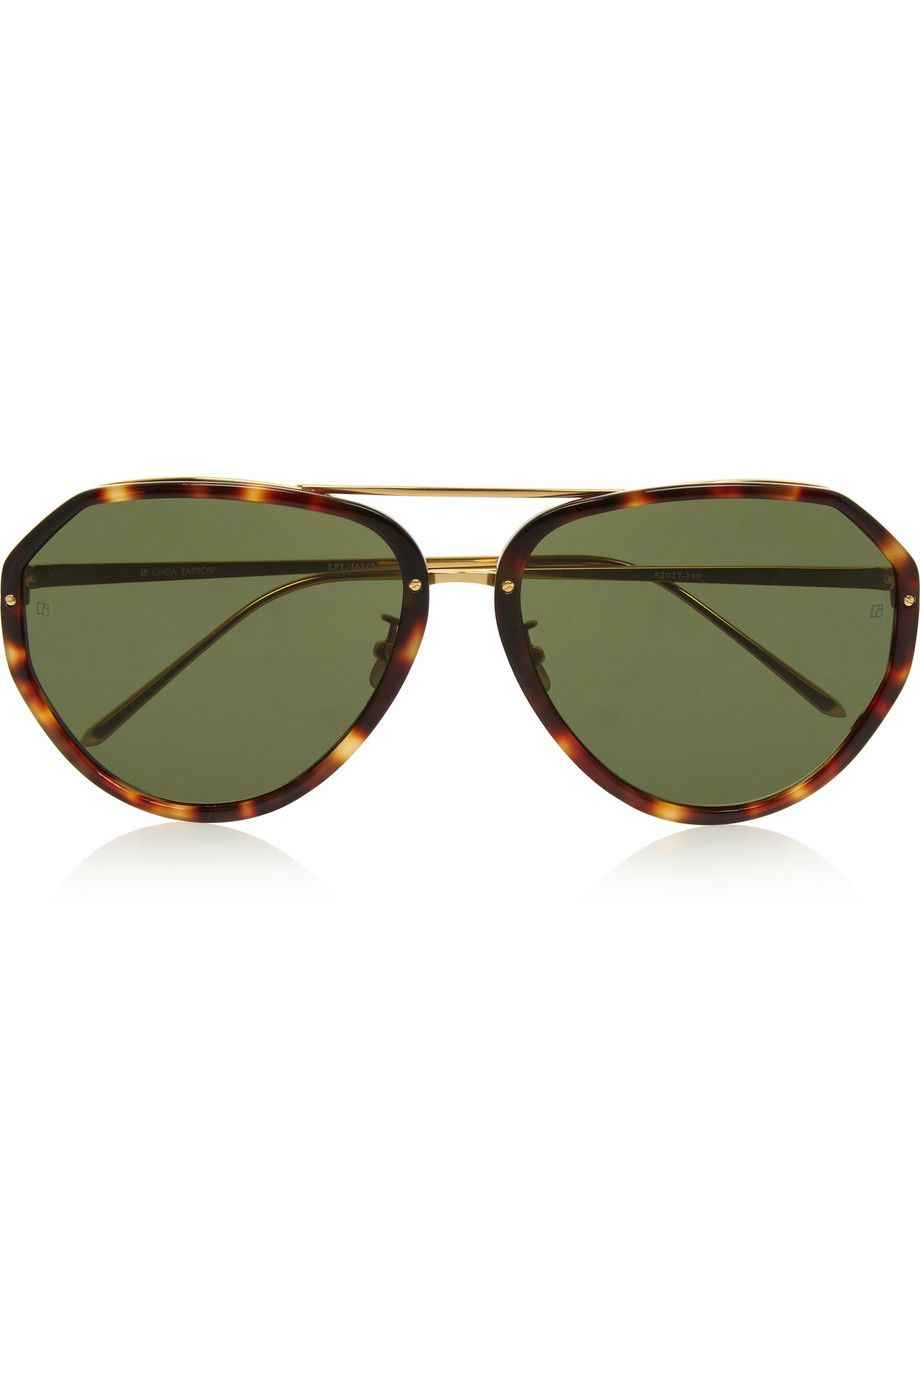 aviator eyewear  11 Best Aviator Sunglasses 2016 - Classic Aviators to Wear This Summer